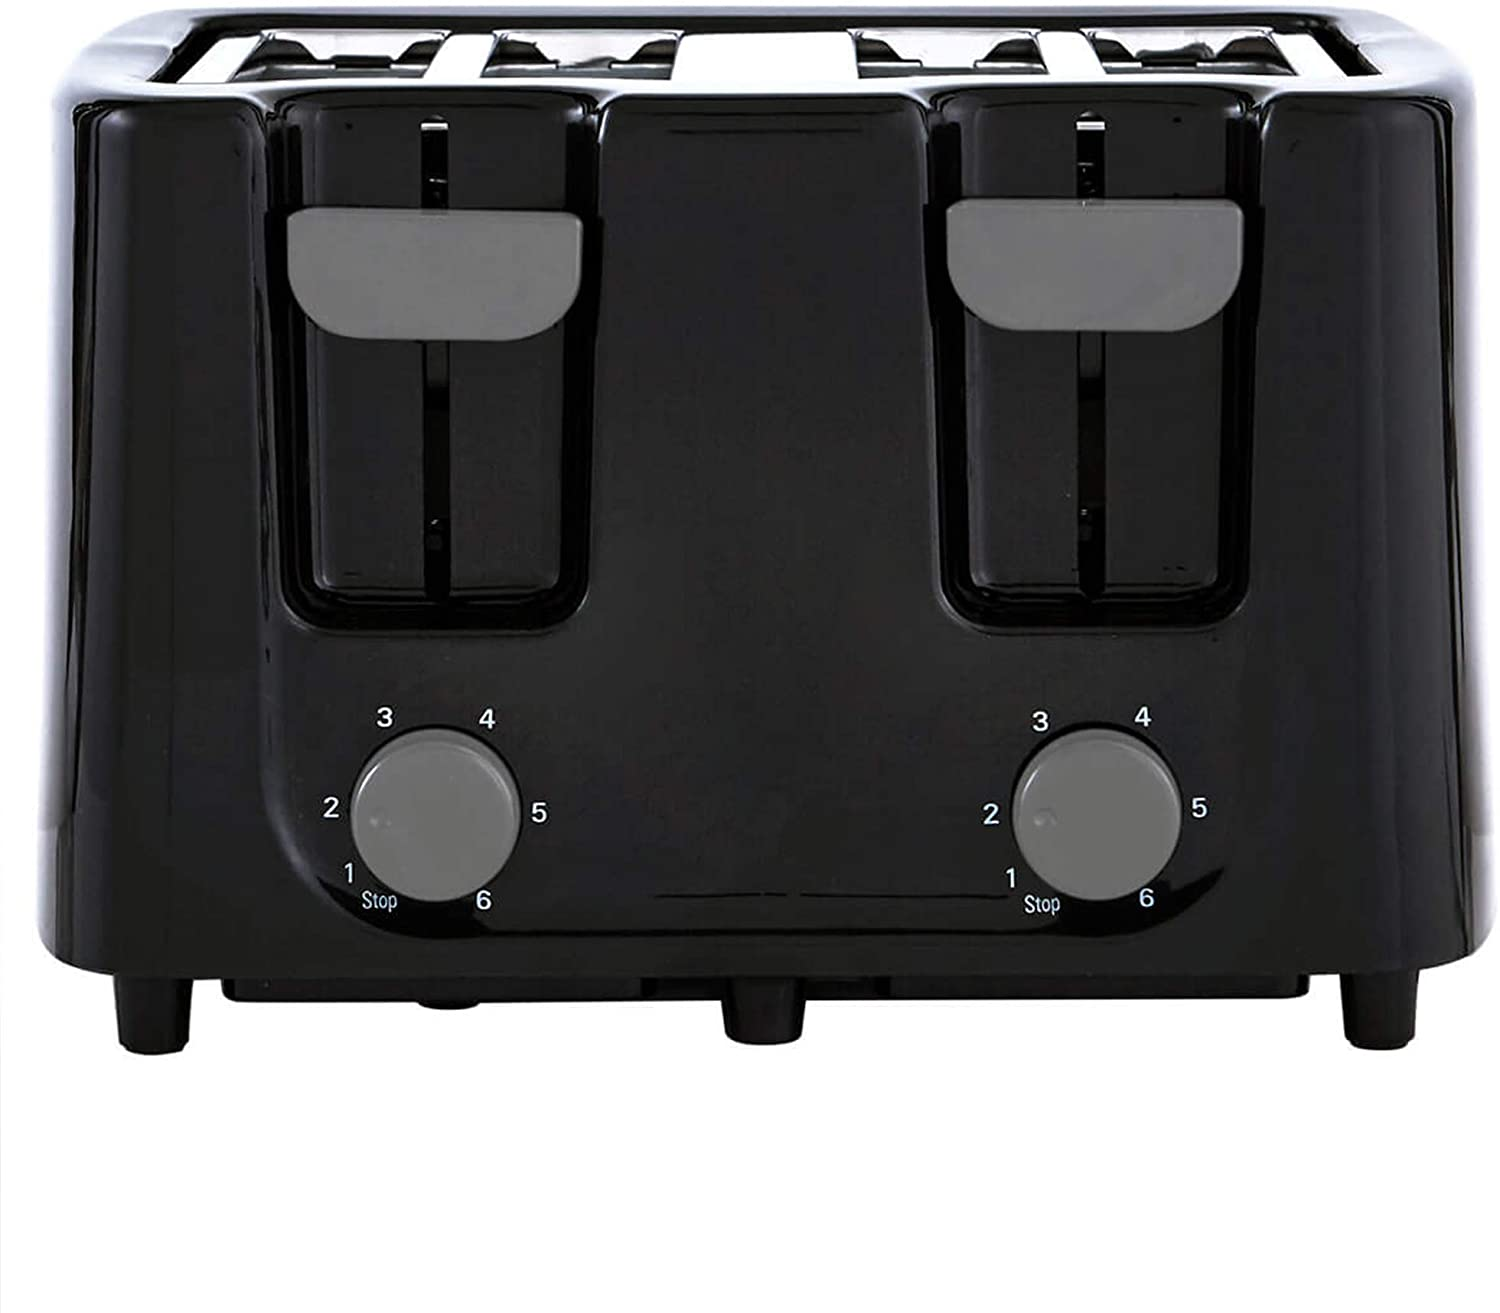 Continental Electric CE-TT029 Toaster, 4 Slice, Black